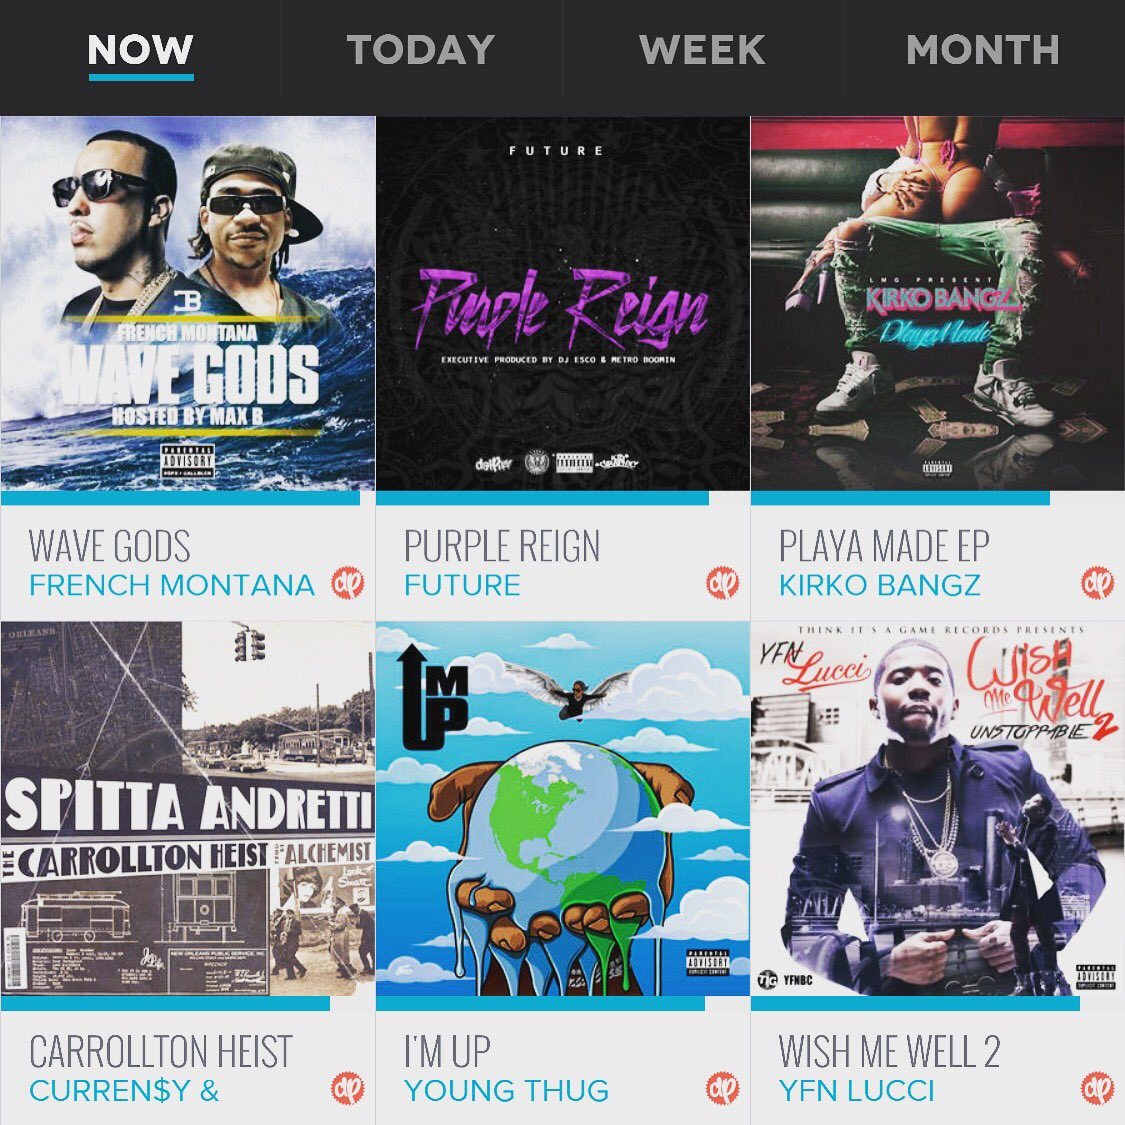 The top 6 mixtapes being streamed RIGHT NOW in the @datpiff APP